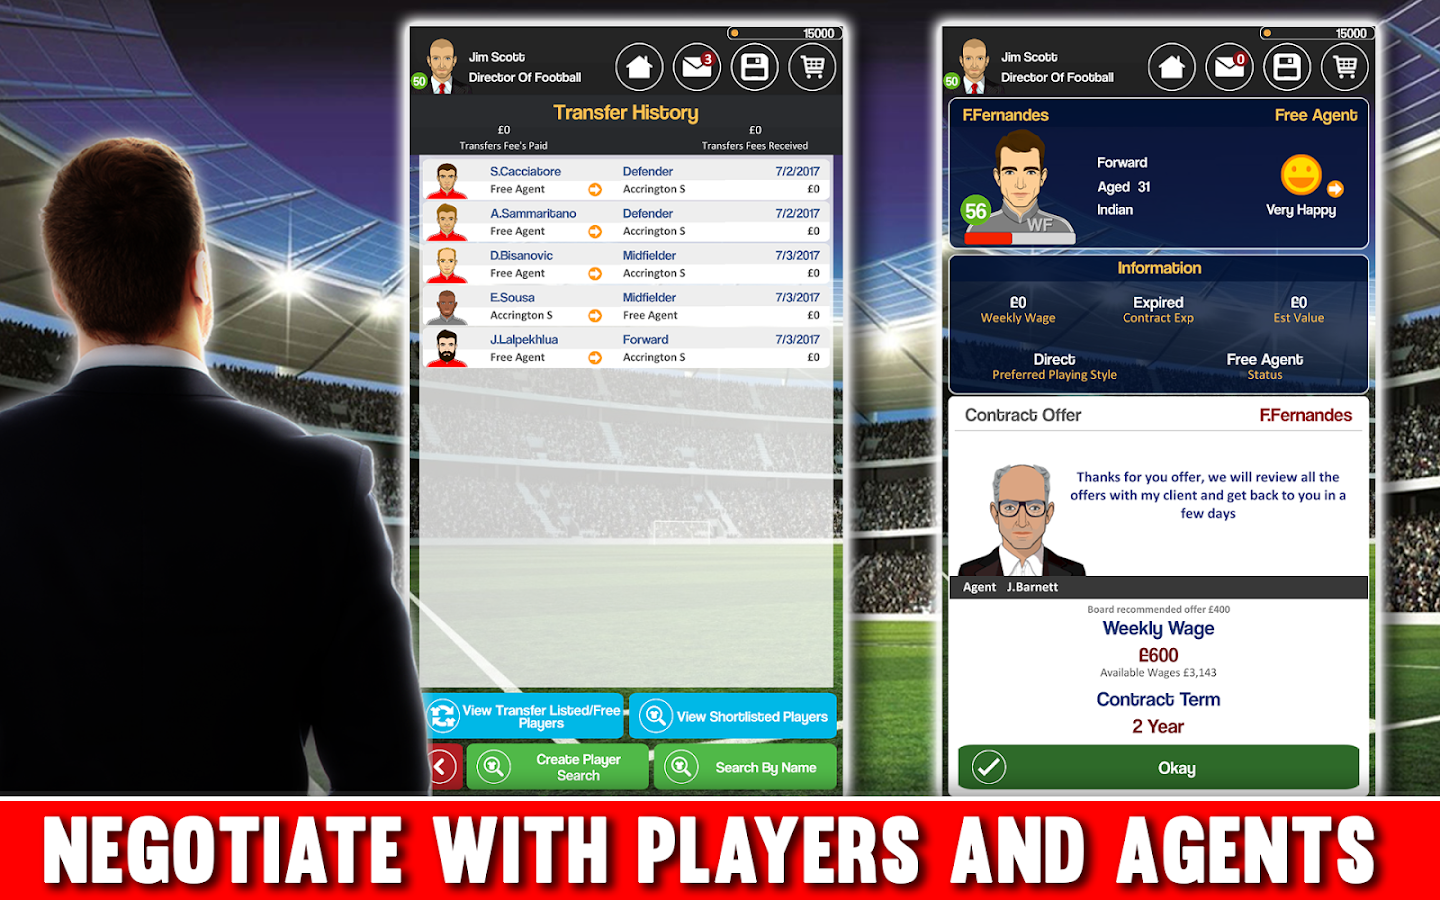 Club Soccer Director - Soccer Club Manager Sim Screenshot 1